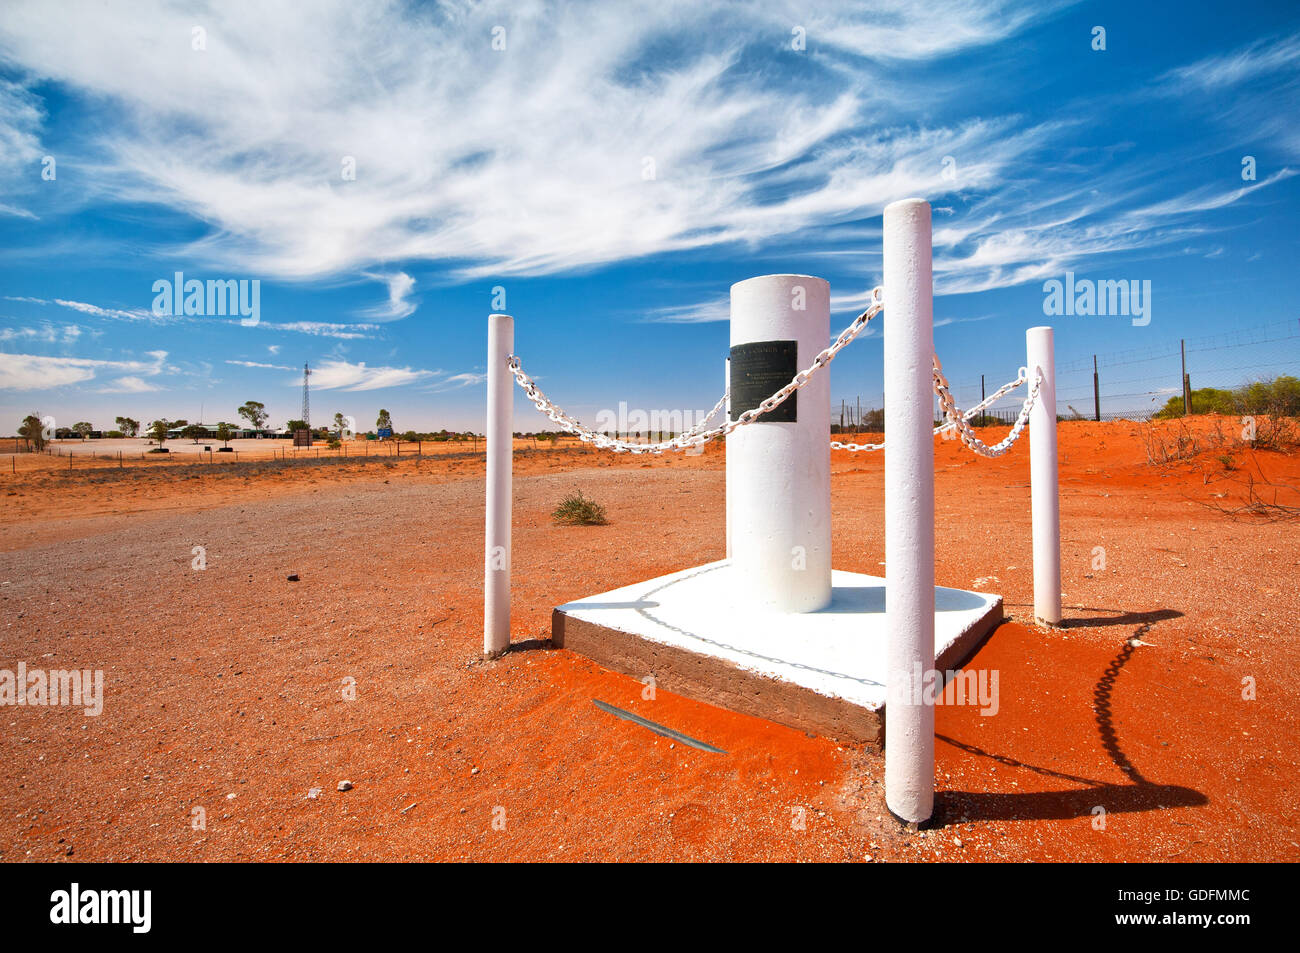 Cameron Corner Marker where the three states Queensland, New South Wales and South Australia meet. - Stock Image